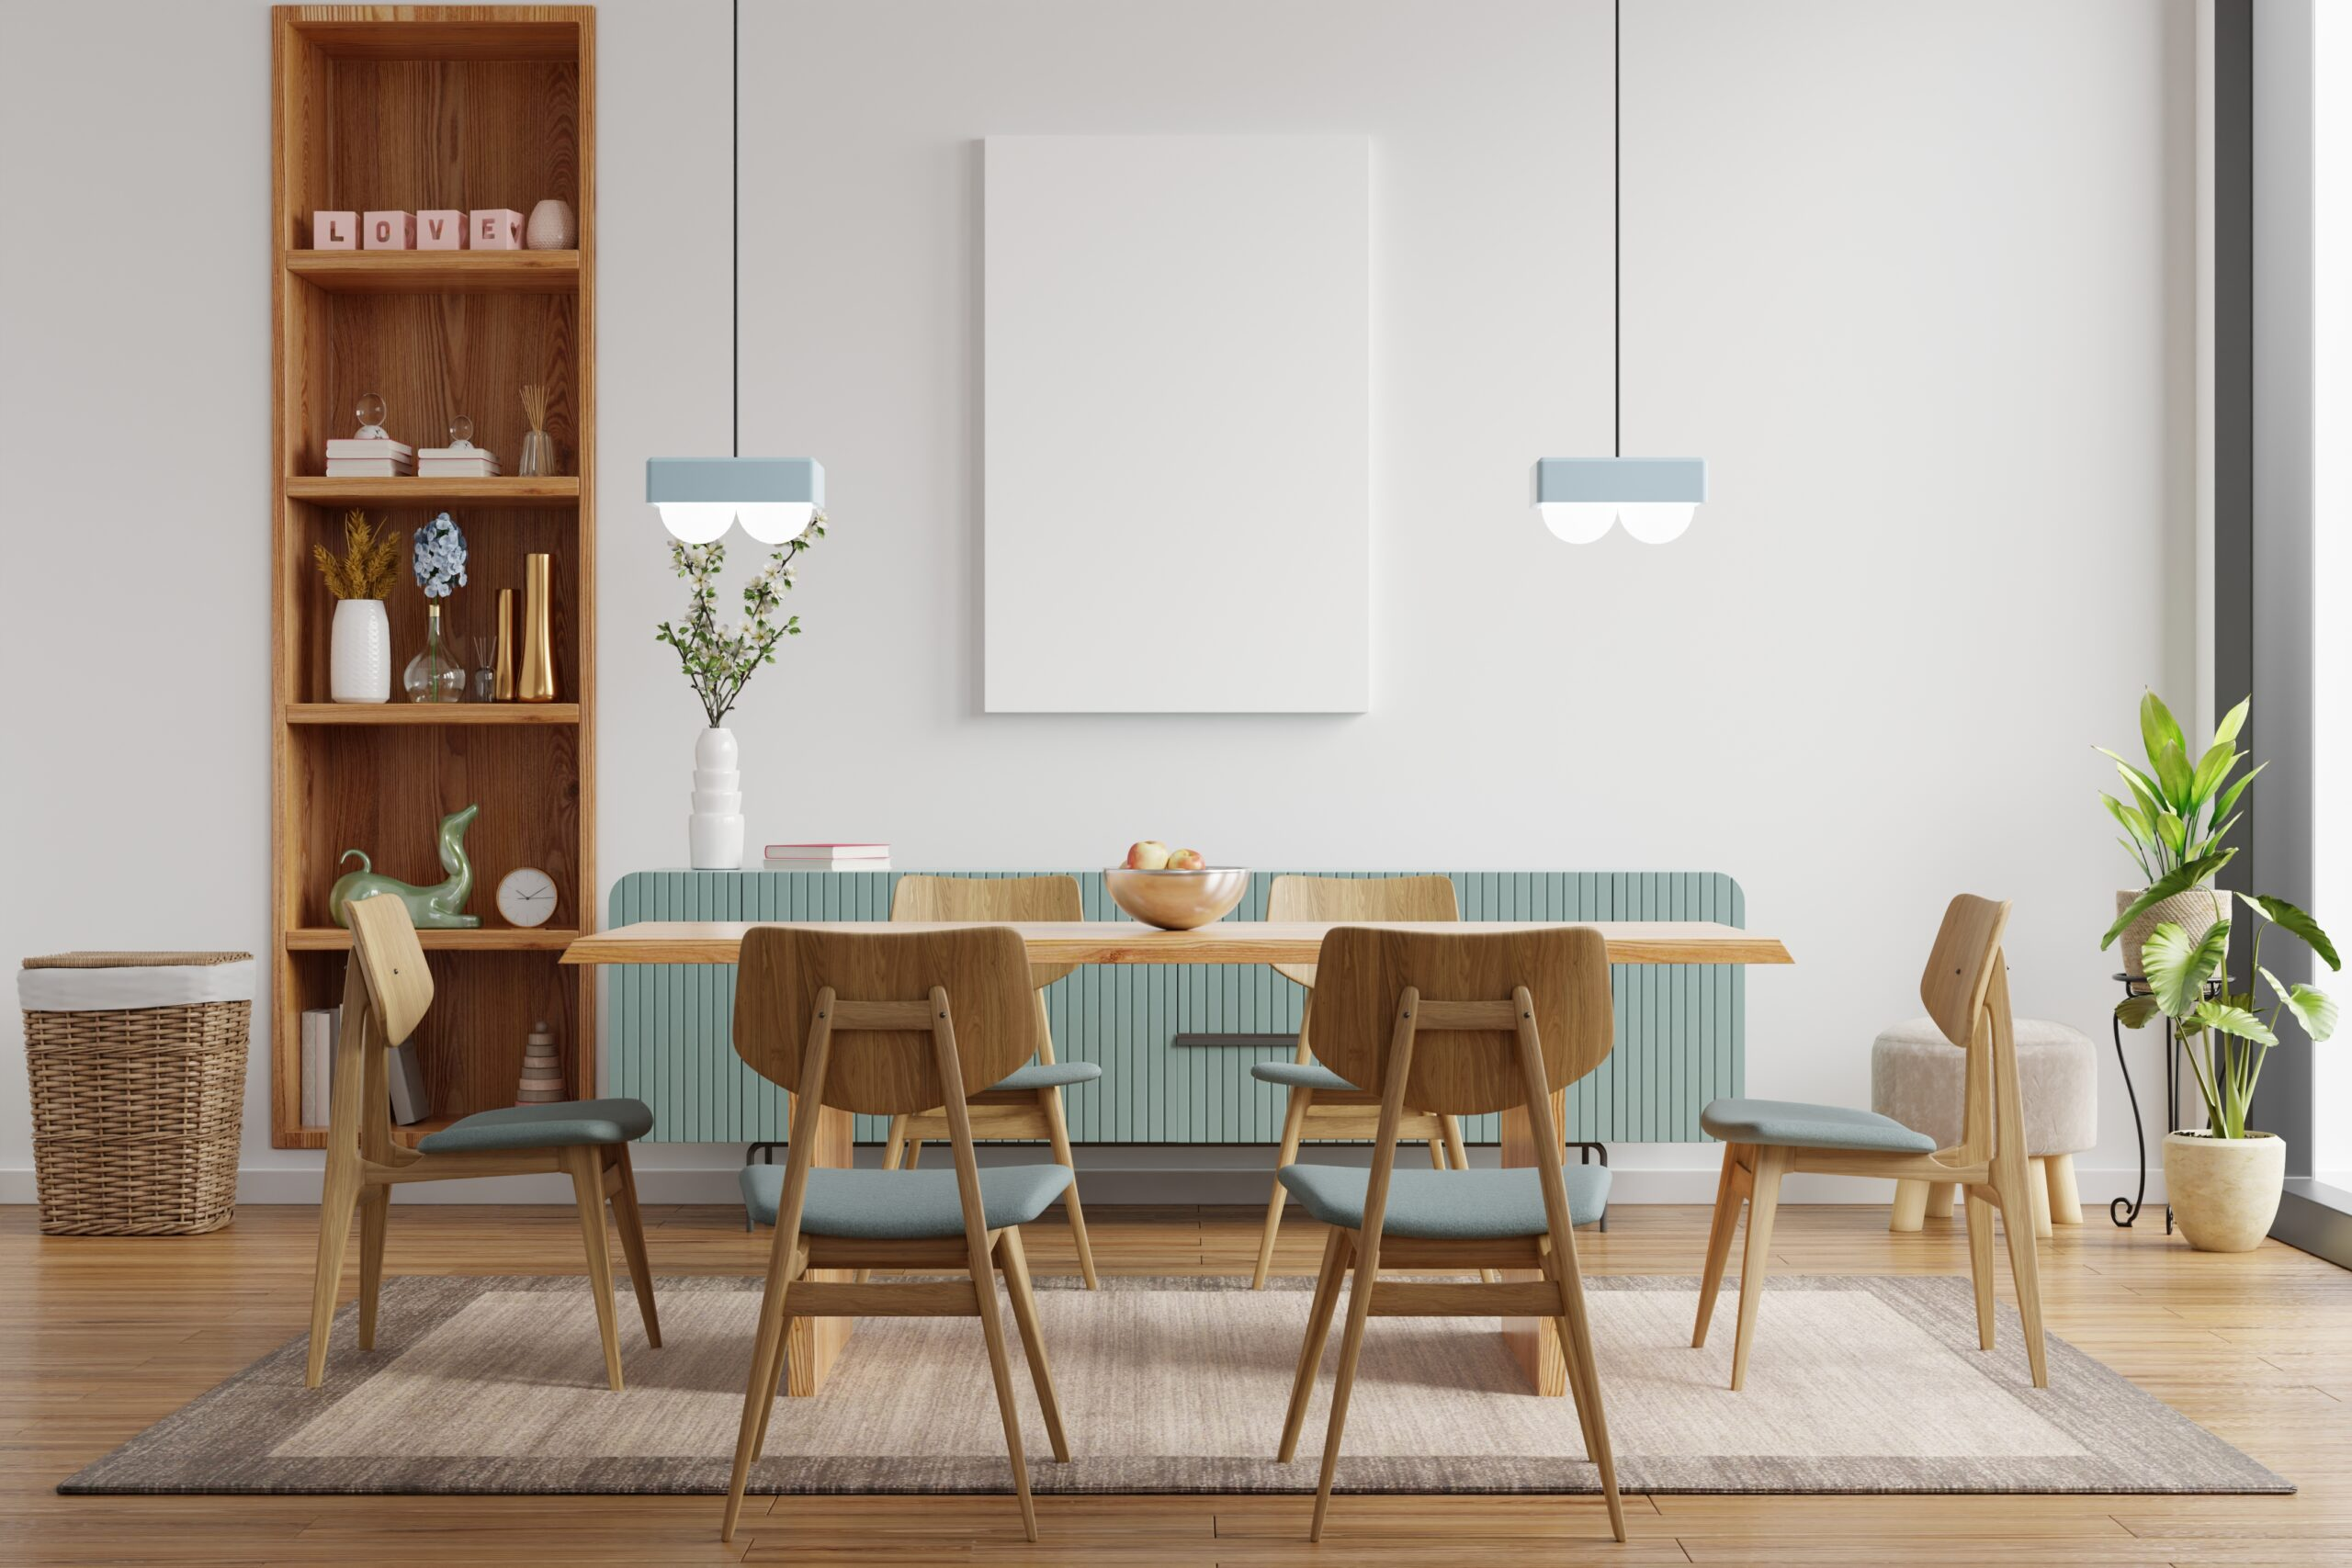 home staging of modern dining room to maximize the value of your home before selling it.